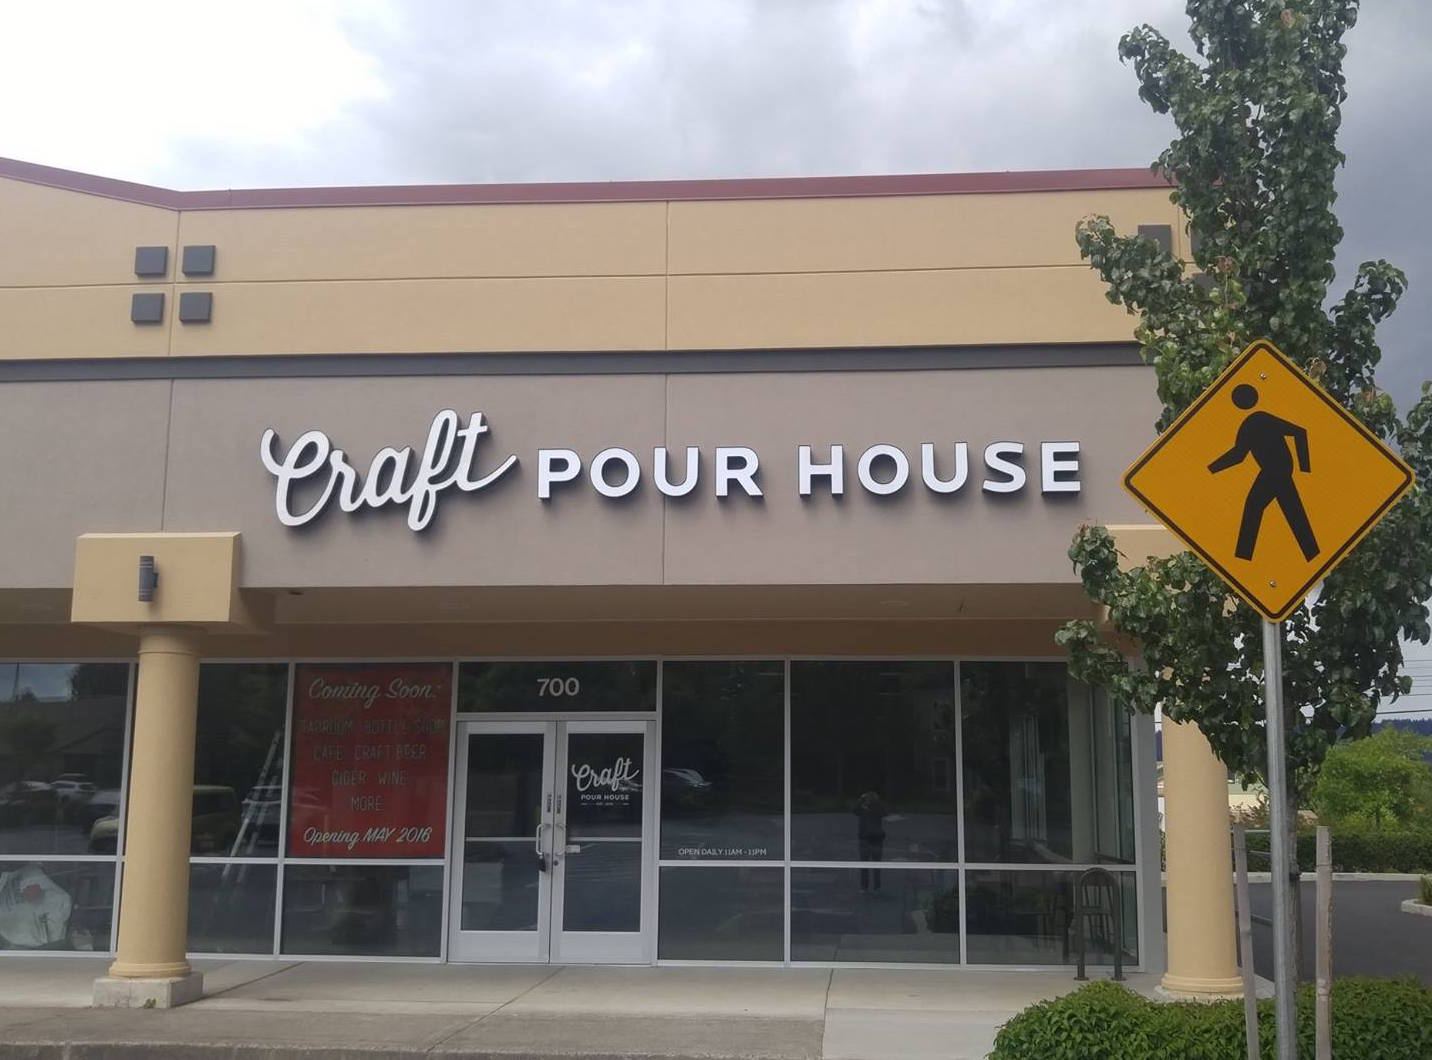 The recently opened Craft Pour House in Beaverton, Oregon. (image courtesy of Craft Pour House)